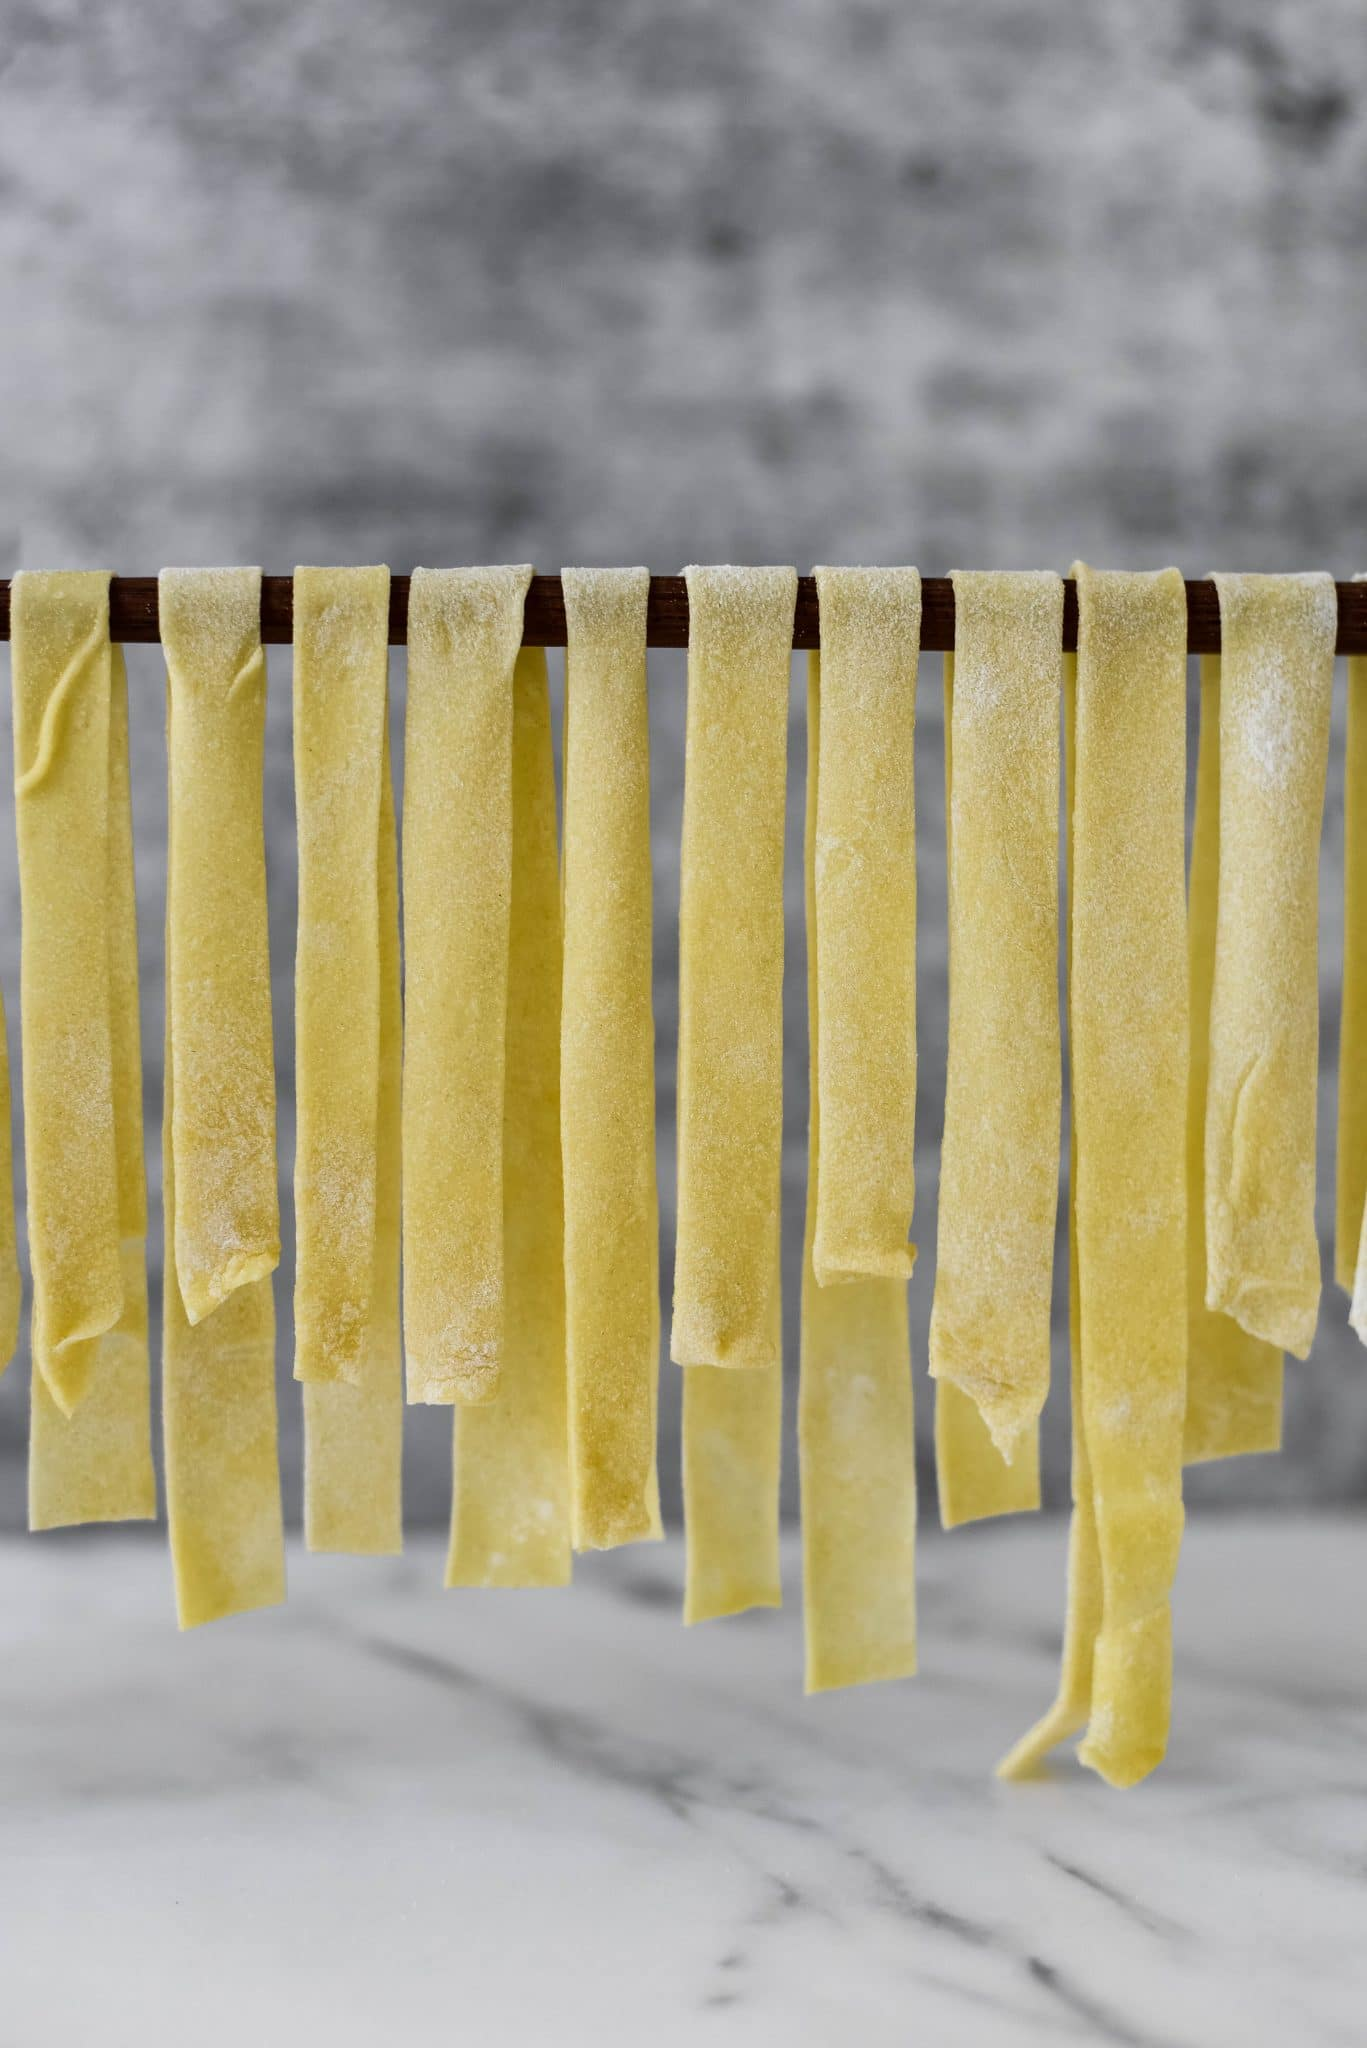 handmade sourdough pasta noodles hanging on wooden spoon